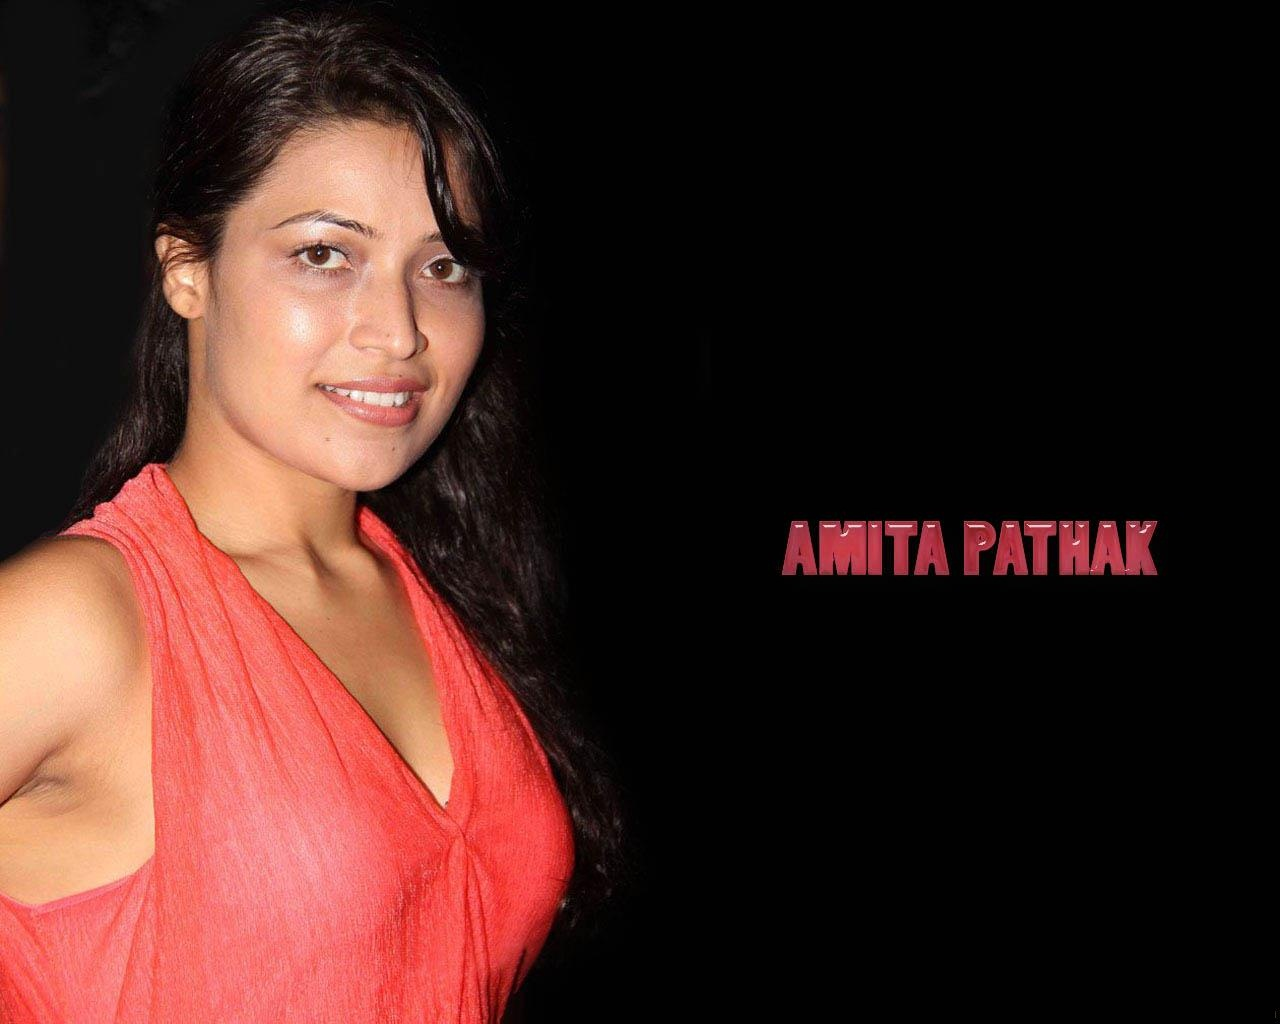 Amita-Pathak-HD-Cute-Wallpapers